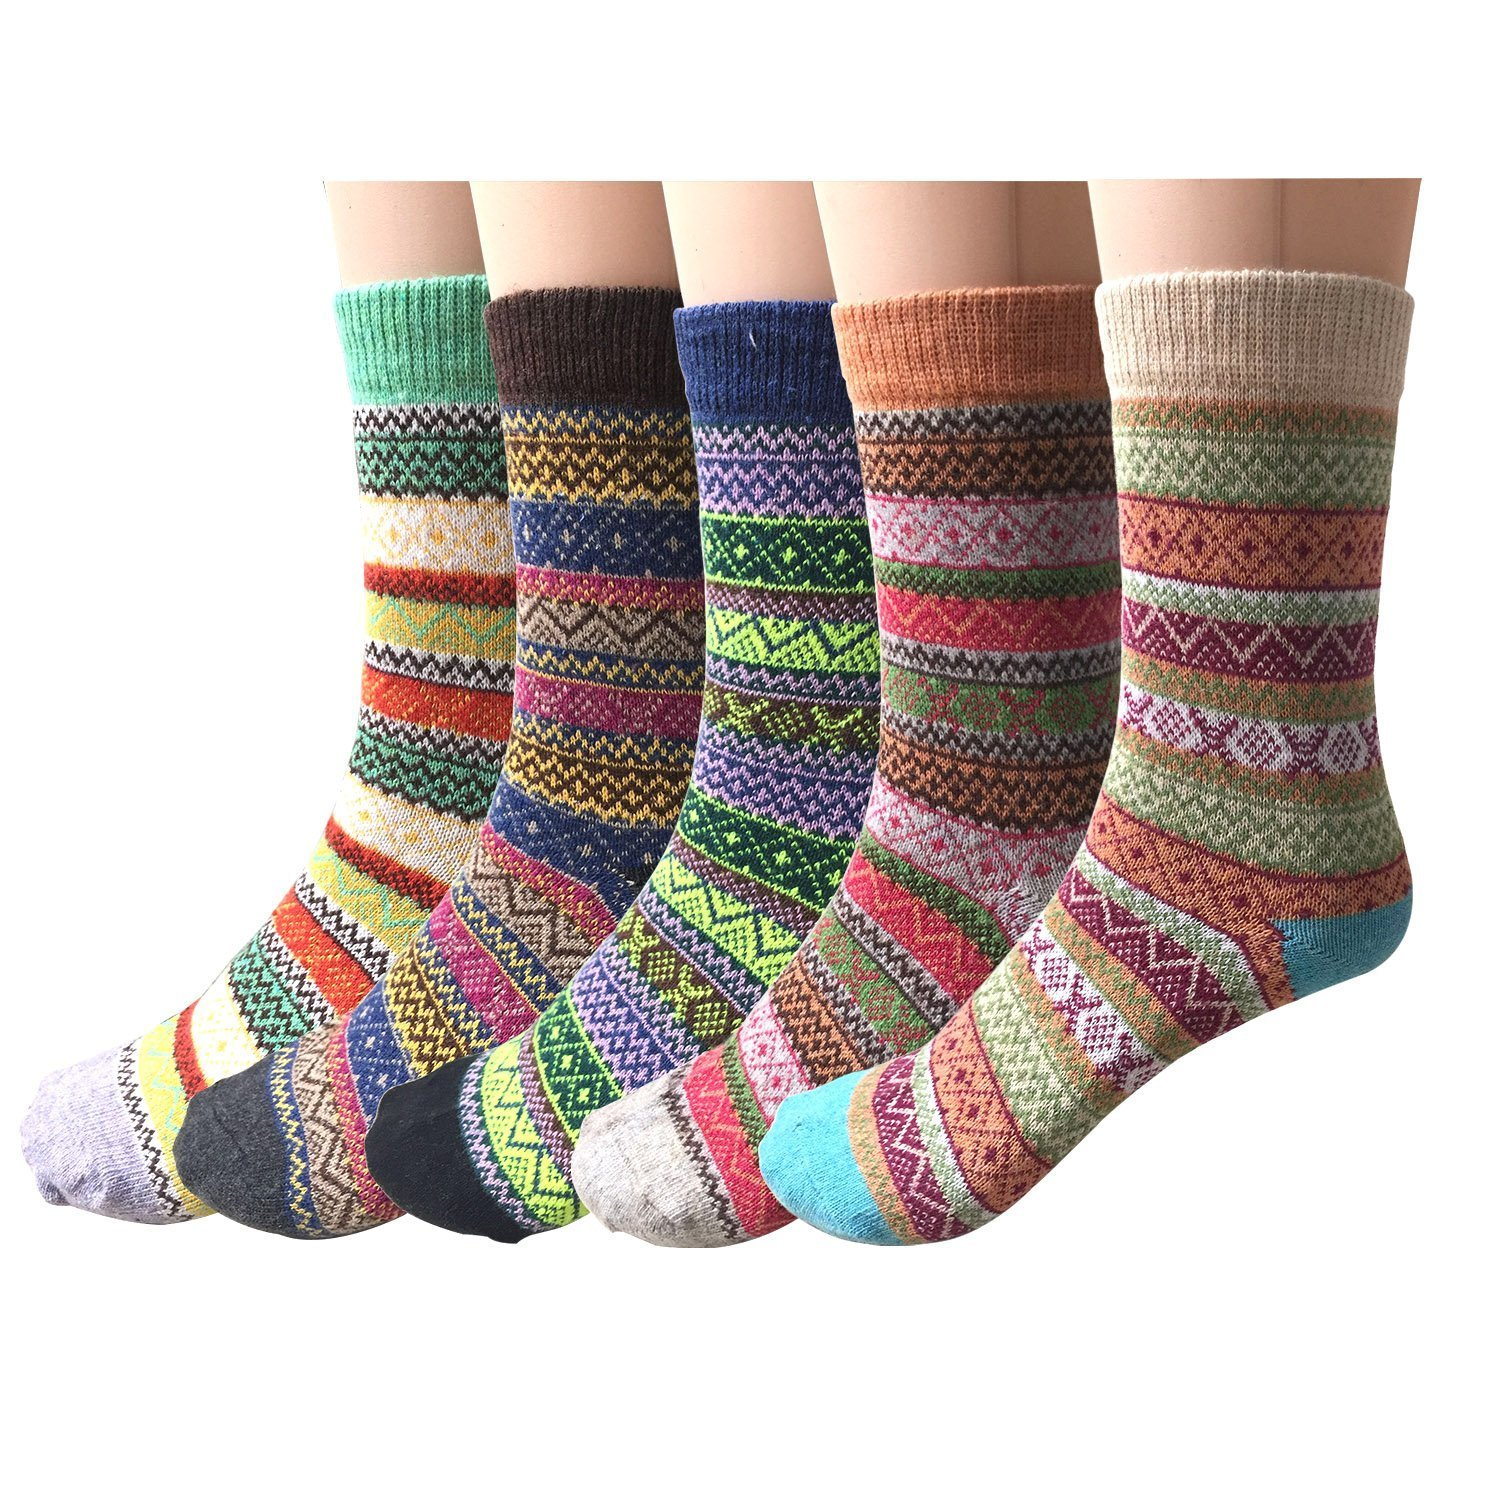 Womens 5 Pairs Winter Warm Vintage Style Thick Knit Wool Cozy Crew Socks H-ethnic Style Free size One Size Multicolor CLT-020-10